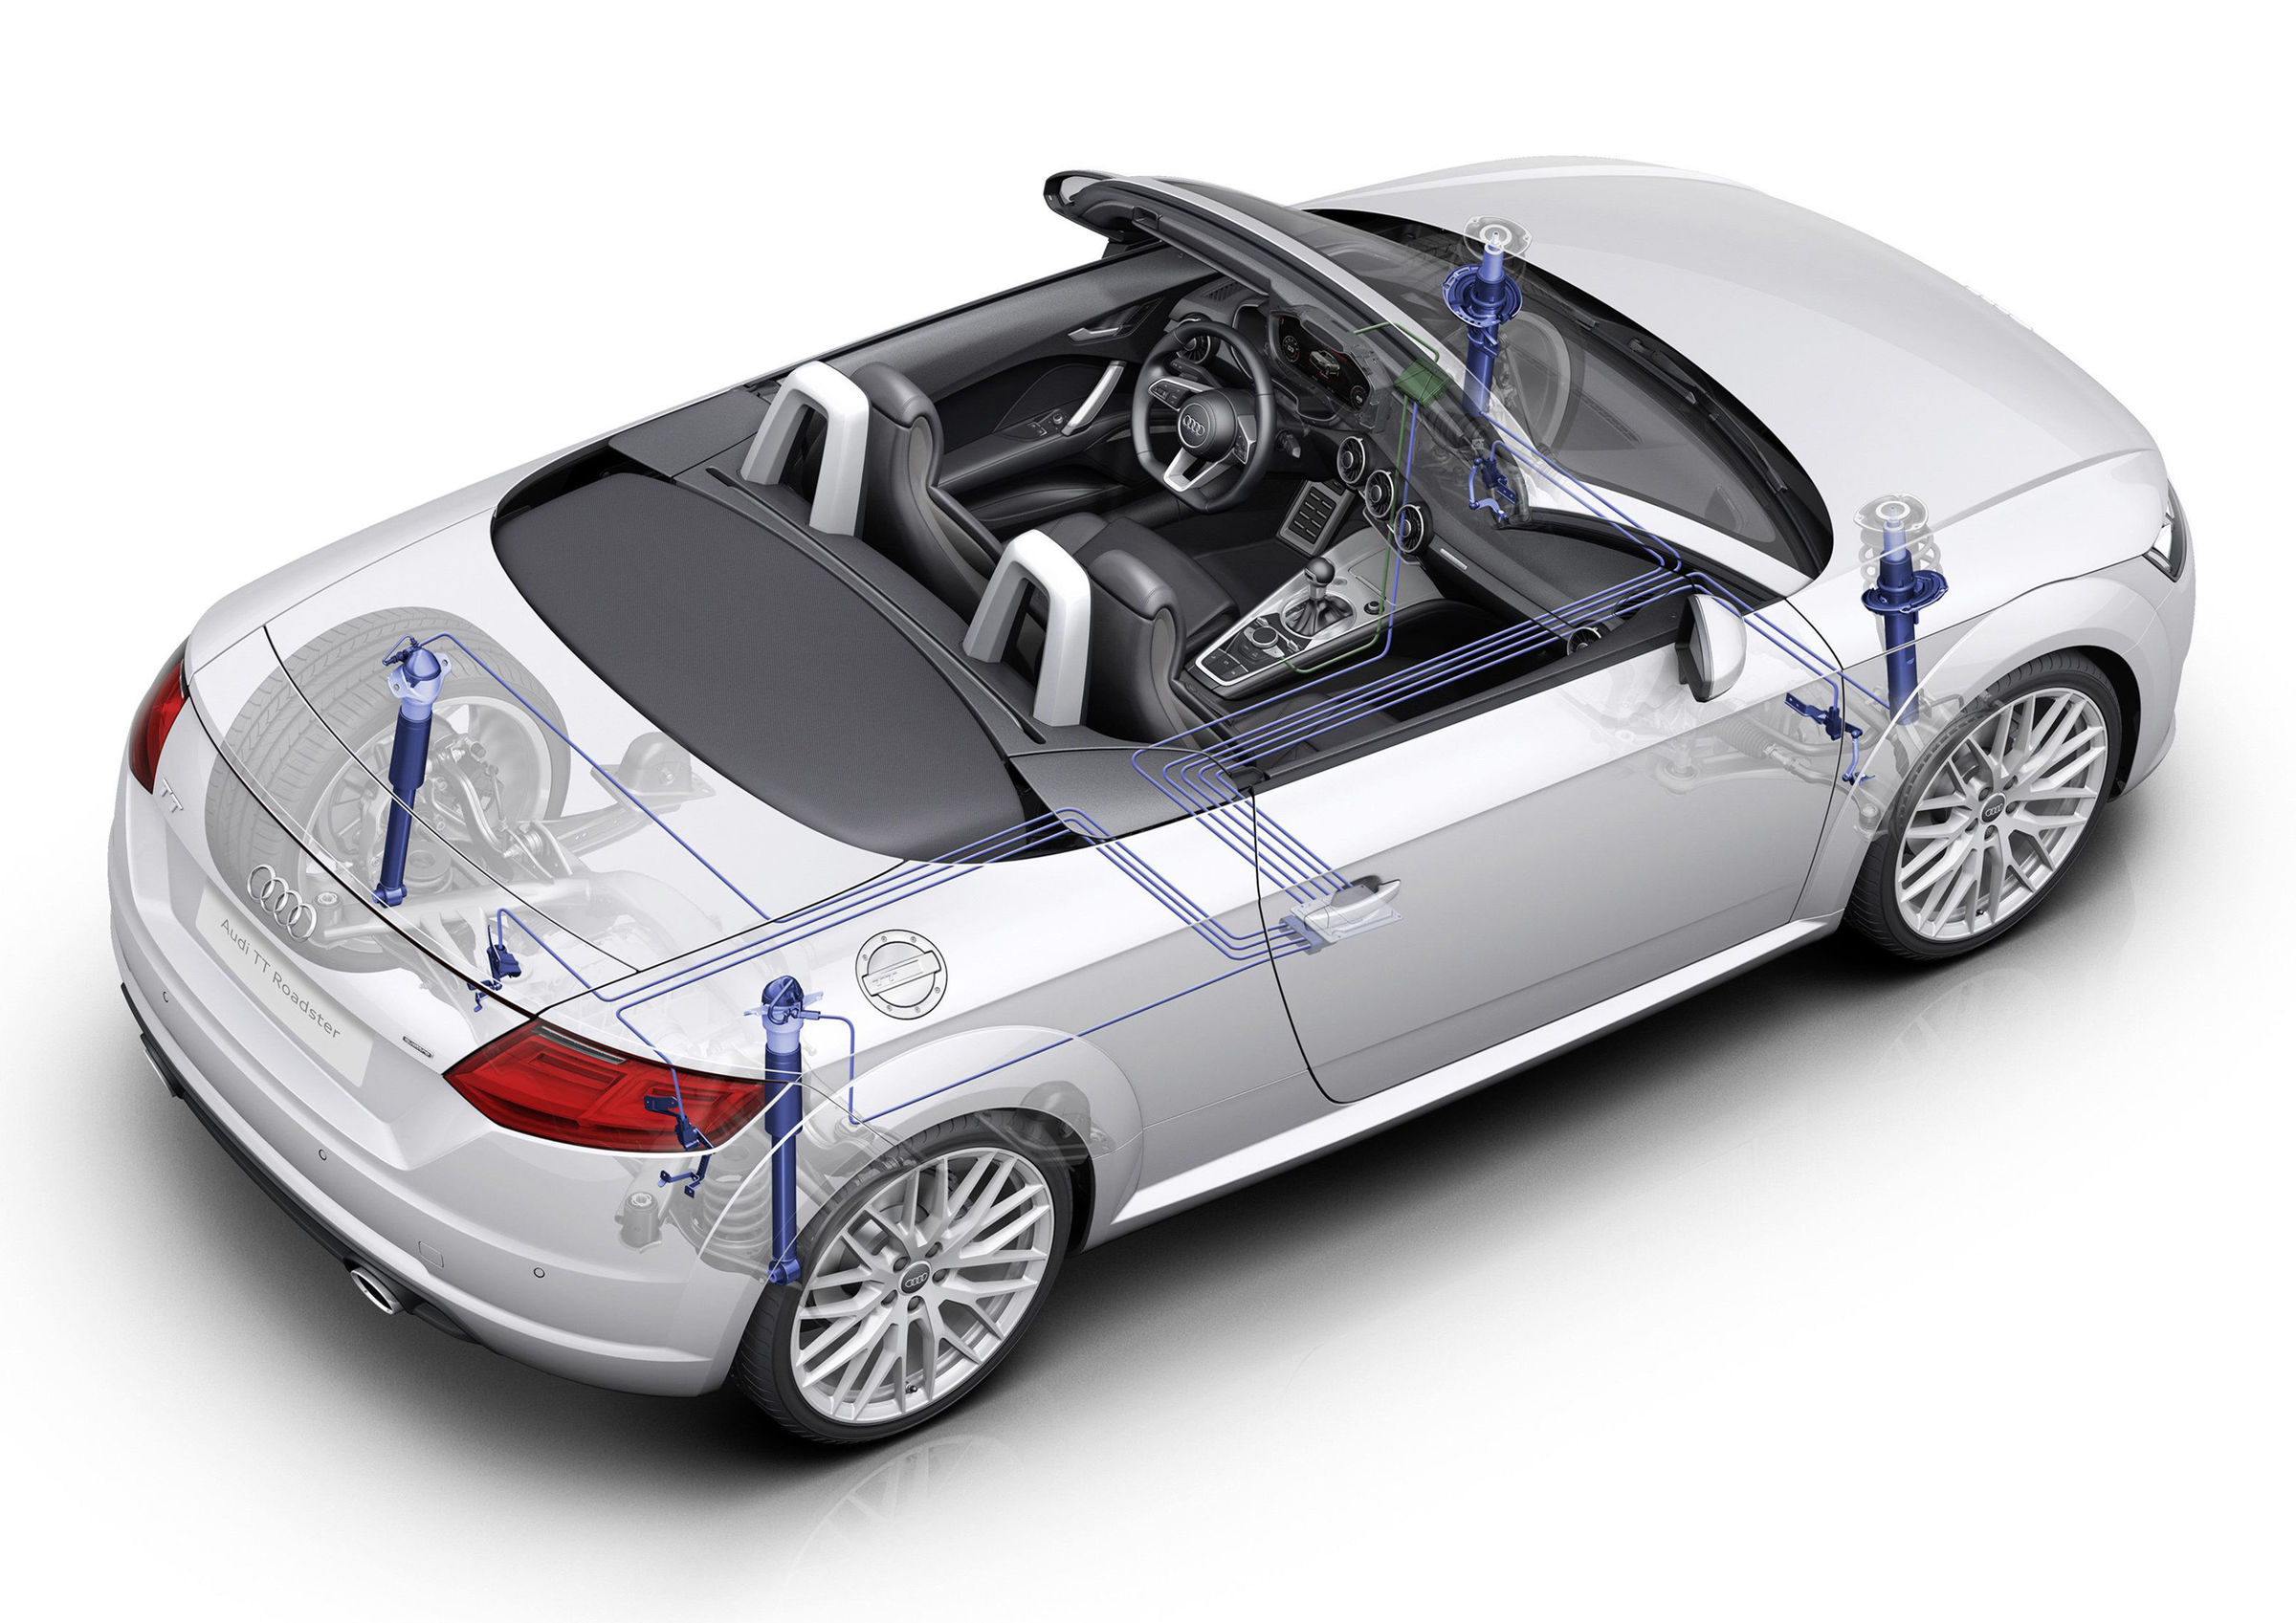 small resolution of chassis audi mediacenter system diagram moreover audi a8 air suspension diagram on oil system